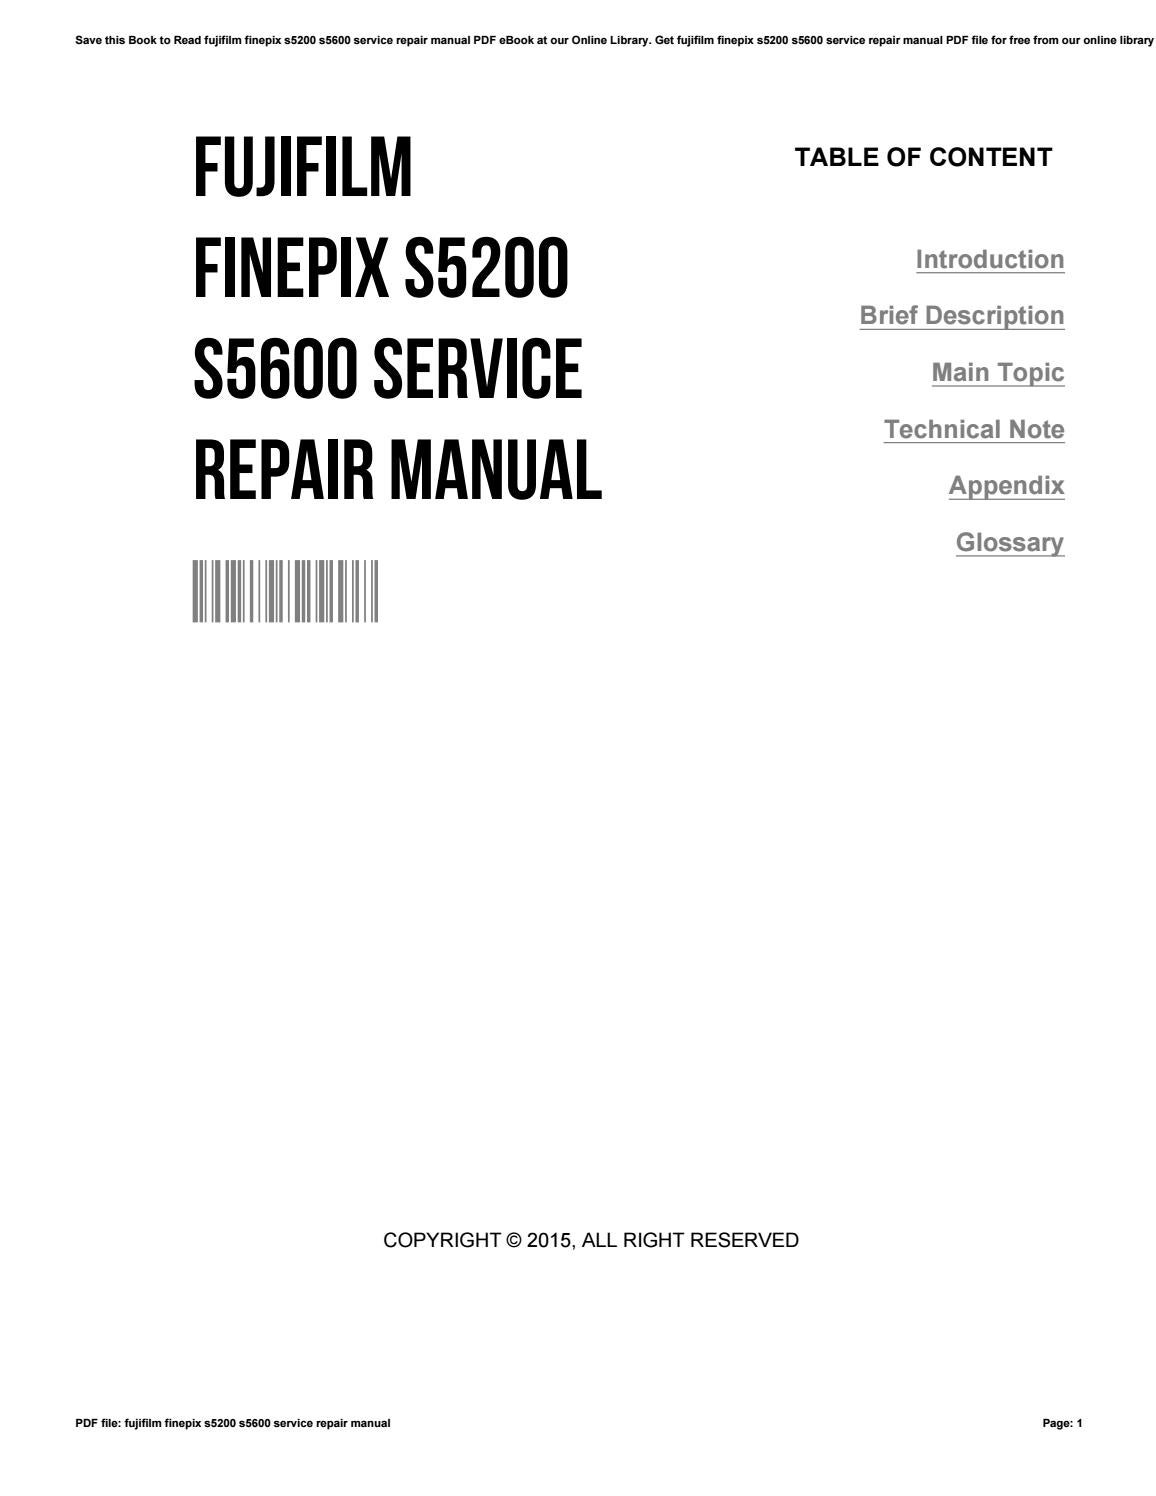 Fujifilm finepix s5200 s5600 service repair manual by TimothyLewis4558 -  issuu